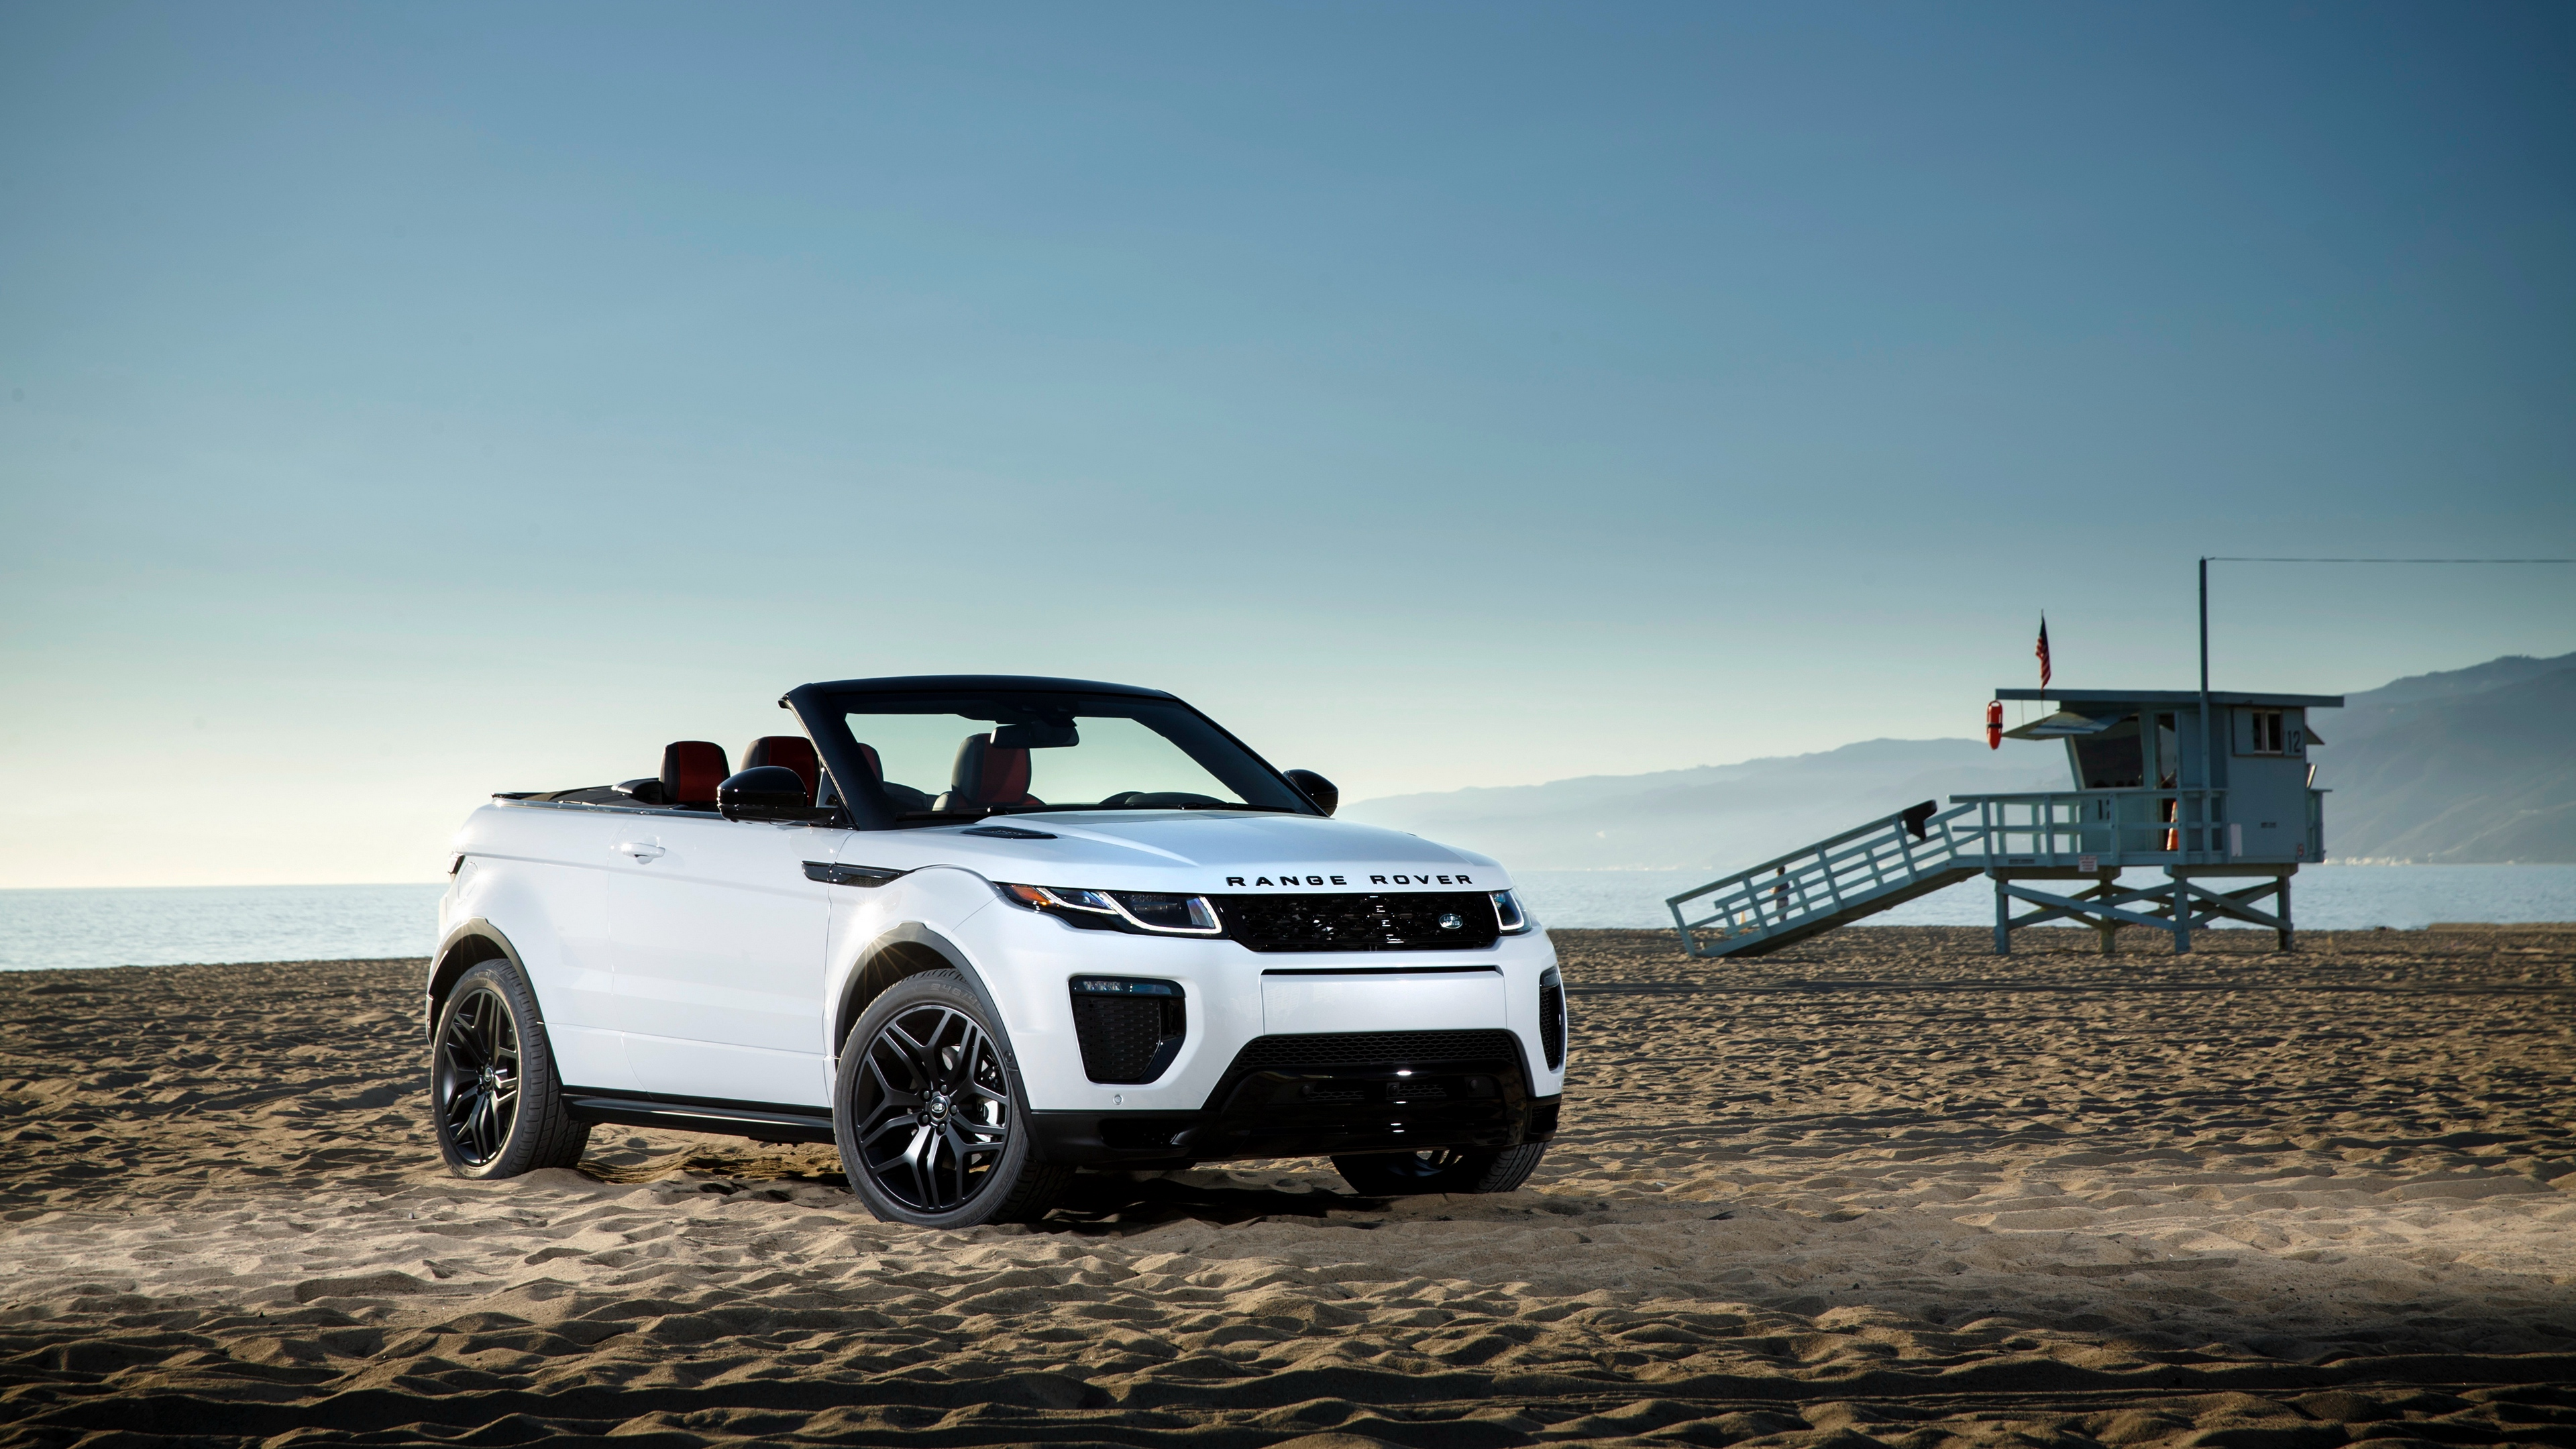 land rover range rover evoque side view 4k 1538937097 - land rover, range rover, evoque, side view 4k - range rover, land rover, evoque